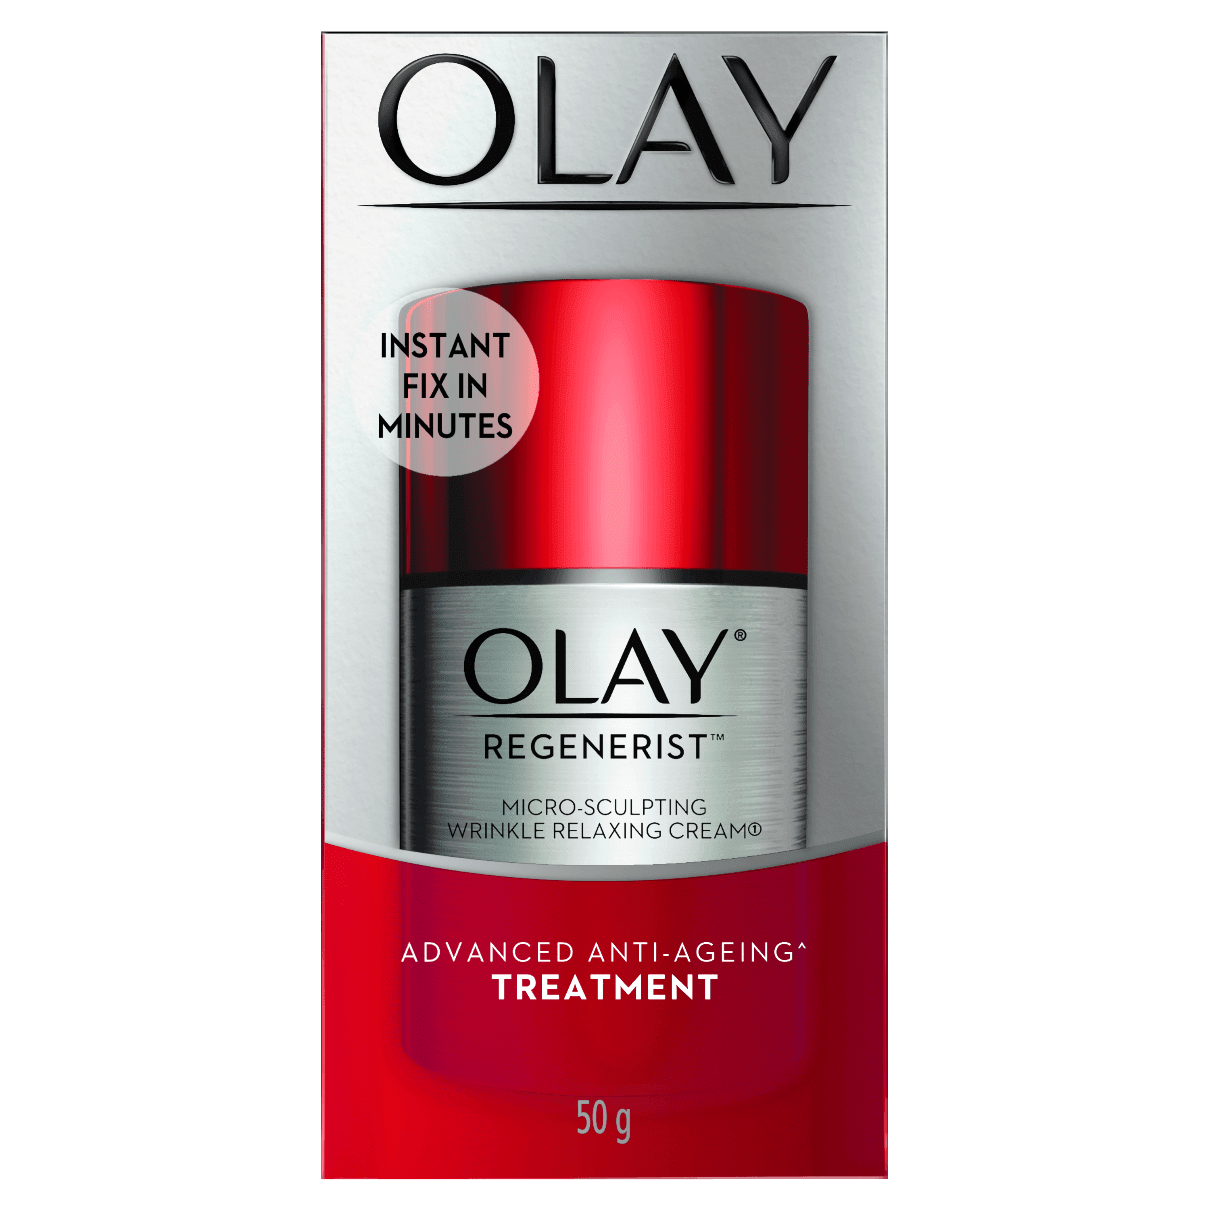 Olay Regenerist Wrinkle Relaxing Cream